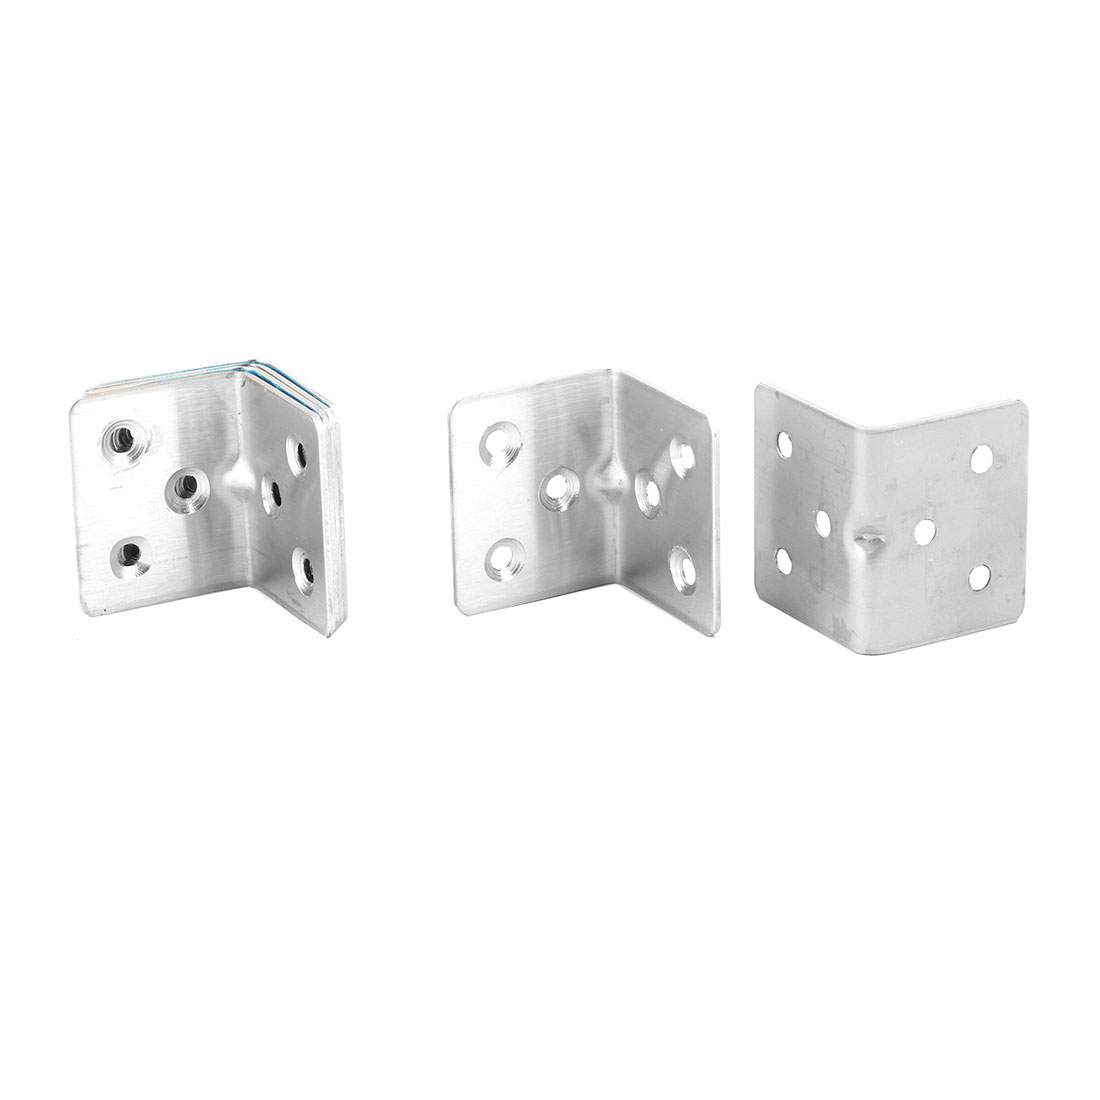 Household Metal L Shaped 6 Holes Fixing Support Angle Bracket Holder Silver Tone 5pcs